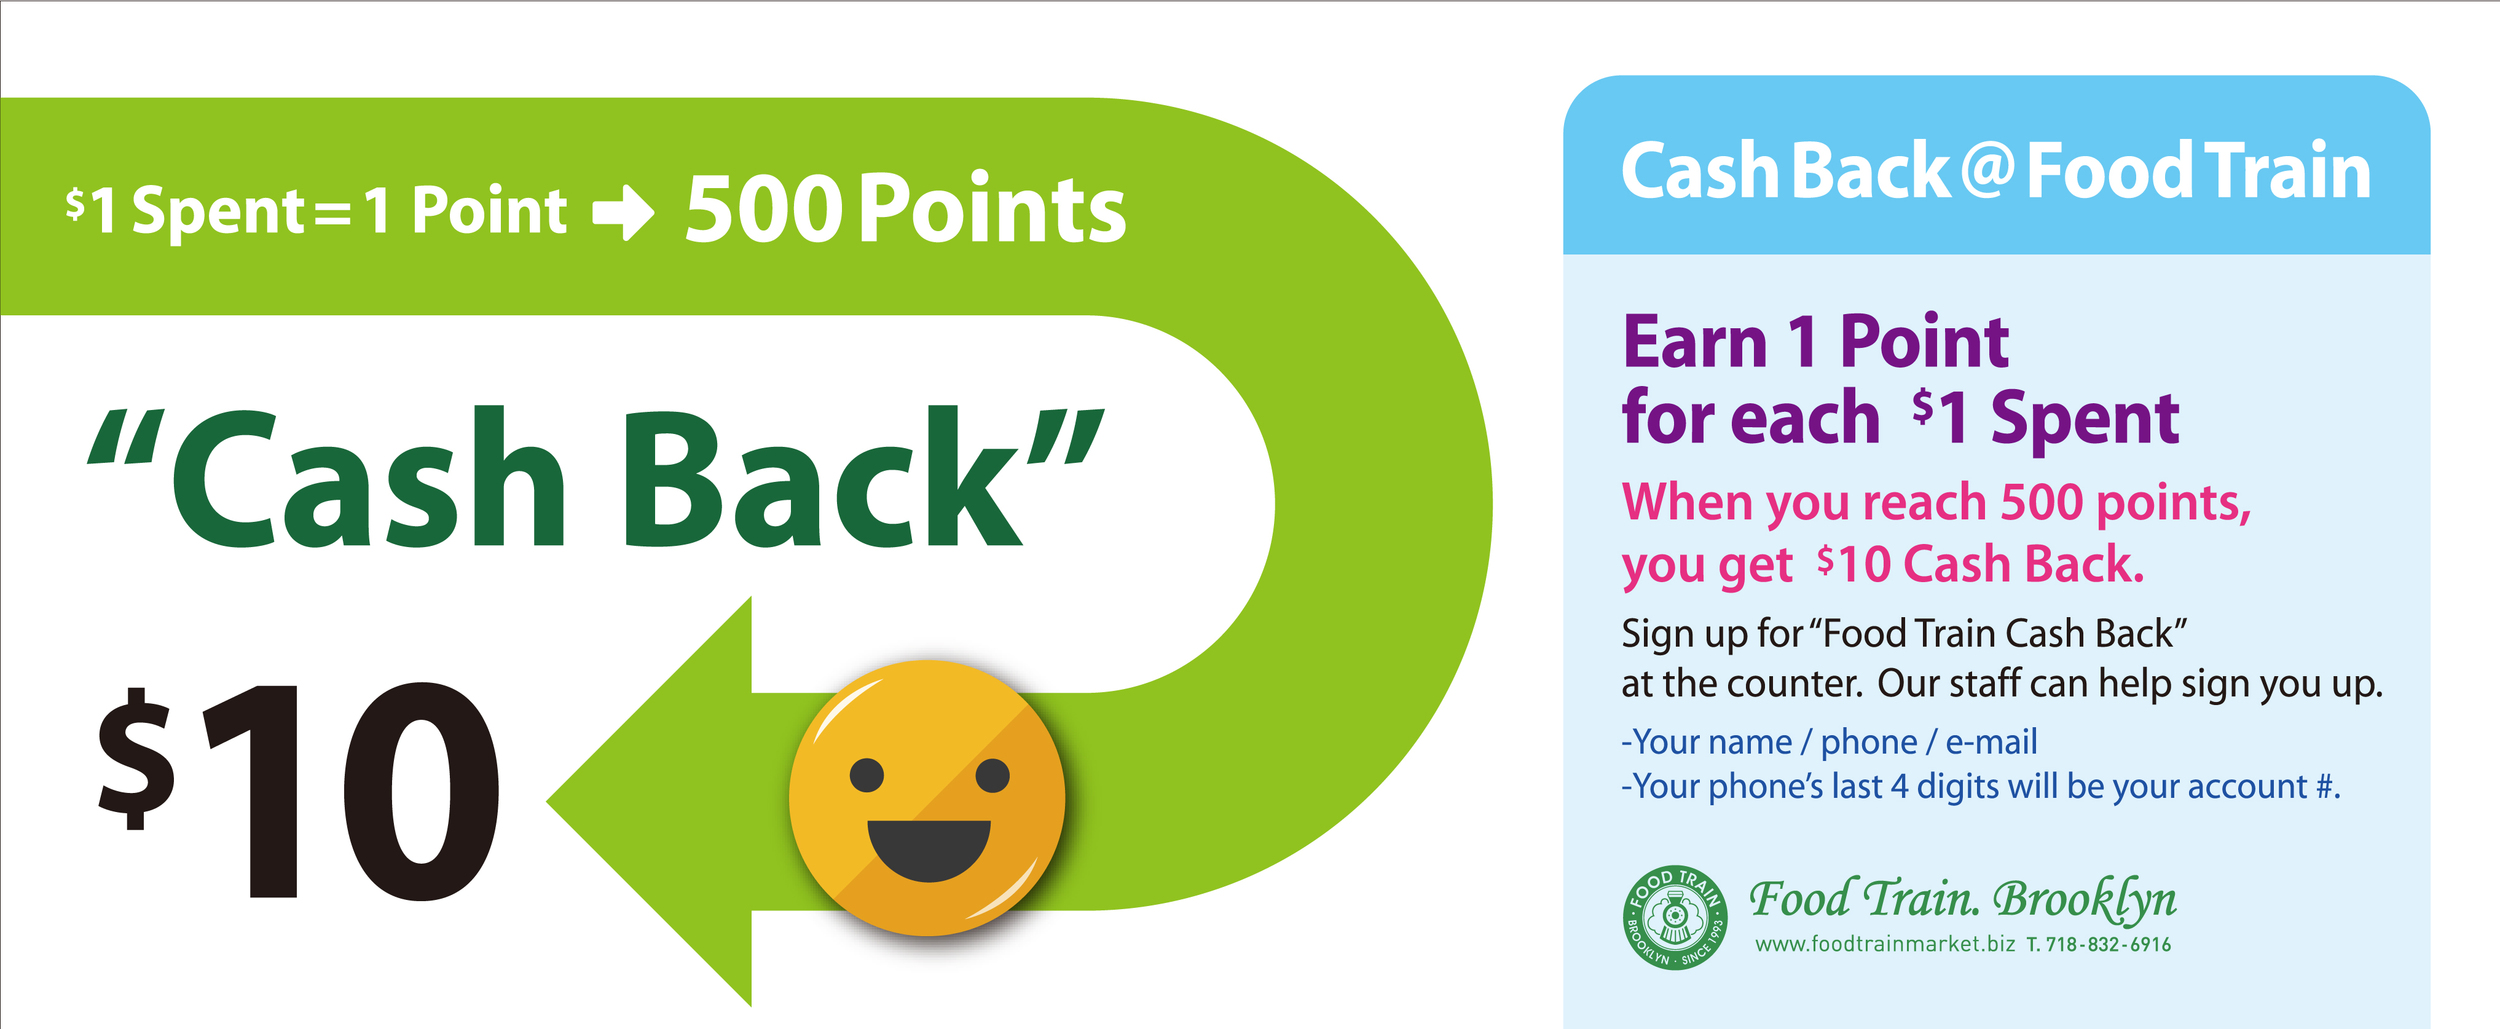 Don't forget to sign up for our cash back service! Click on the image for details.